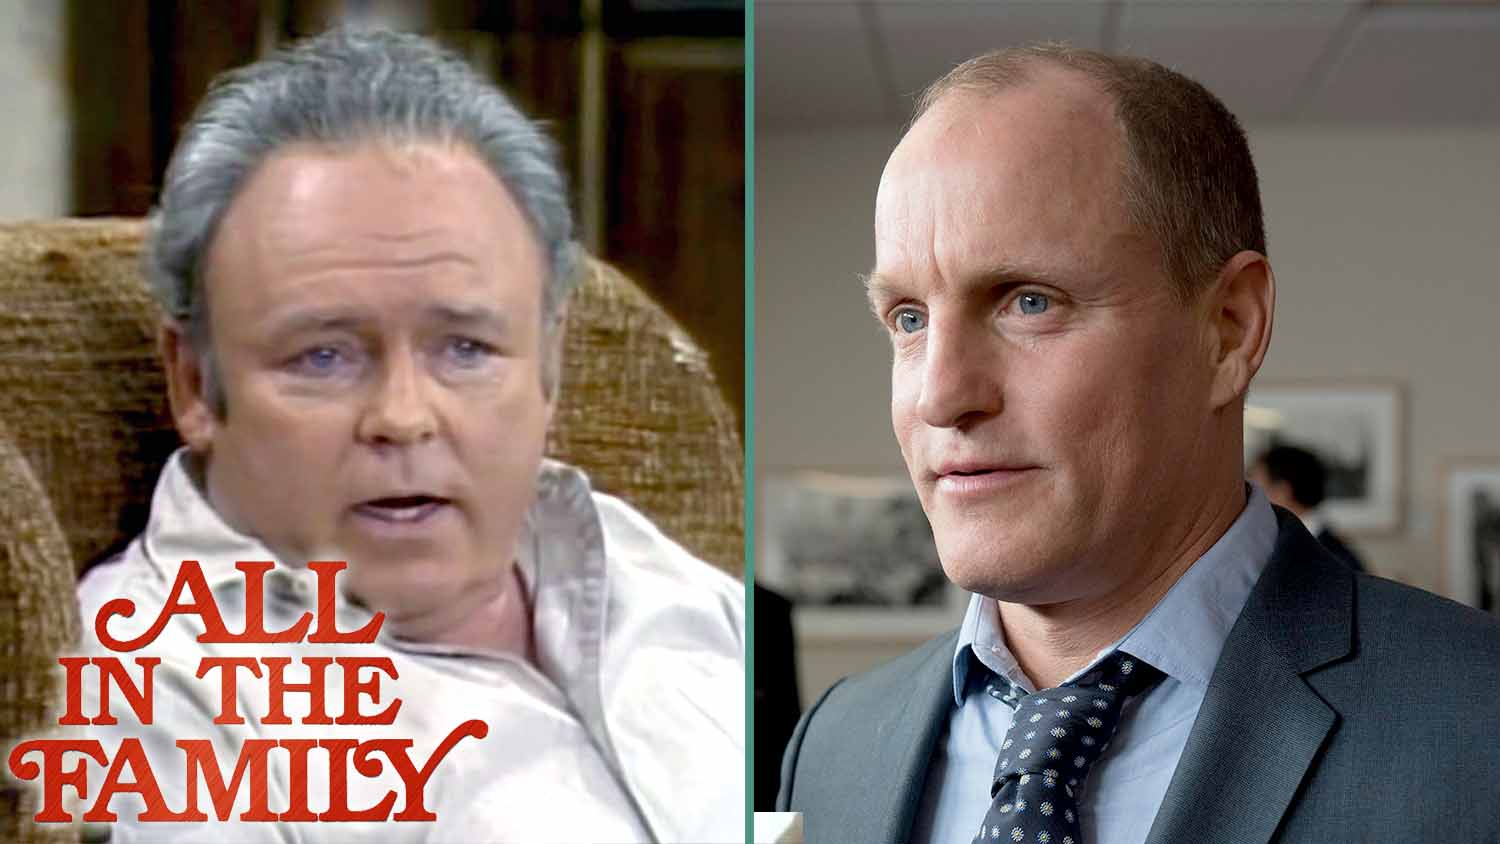 Woody Harrelson Gives 'All in the Family' a Vegan Archie Bunker